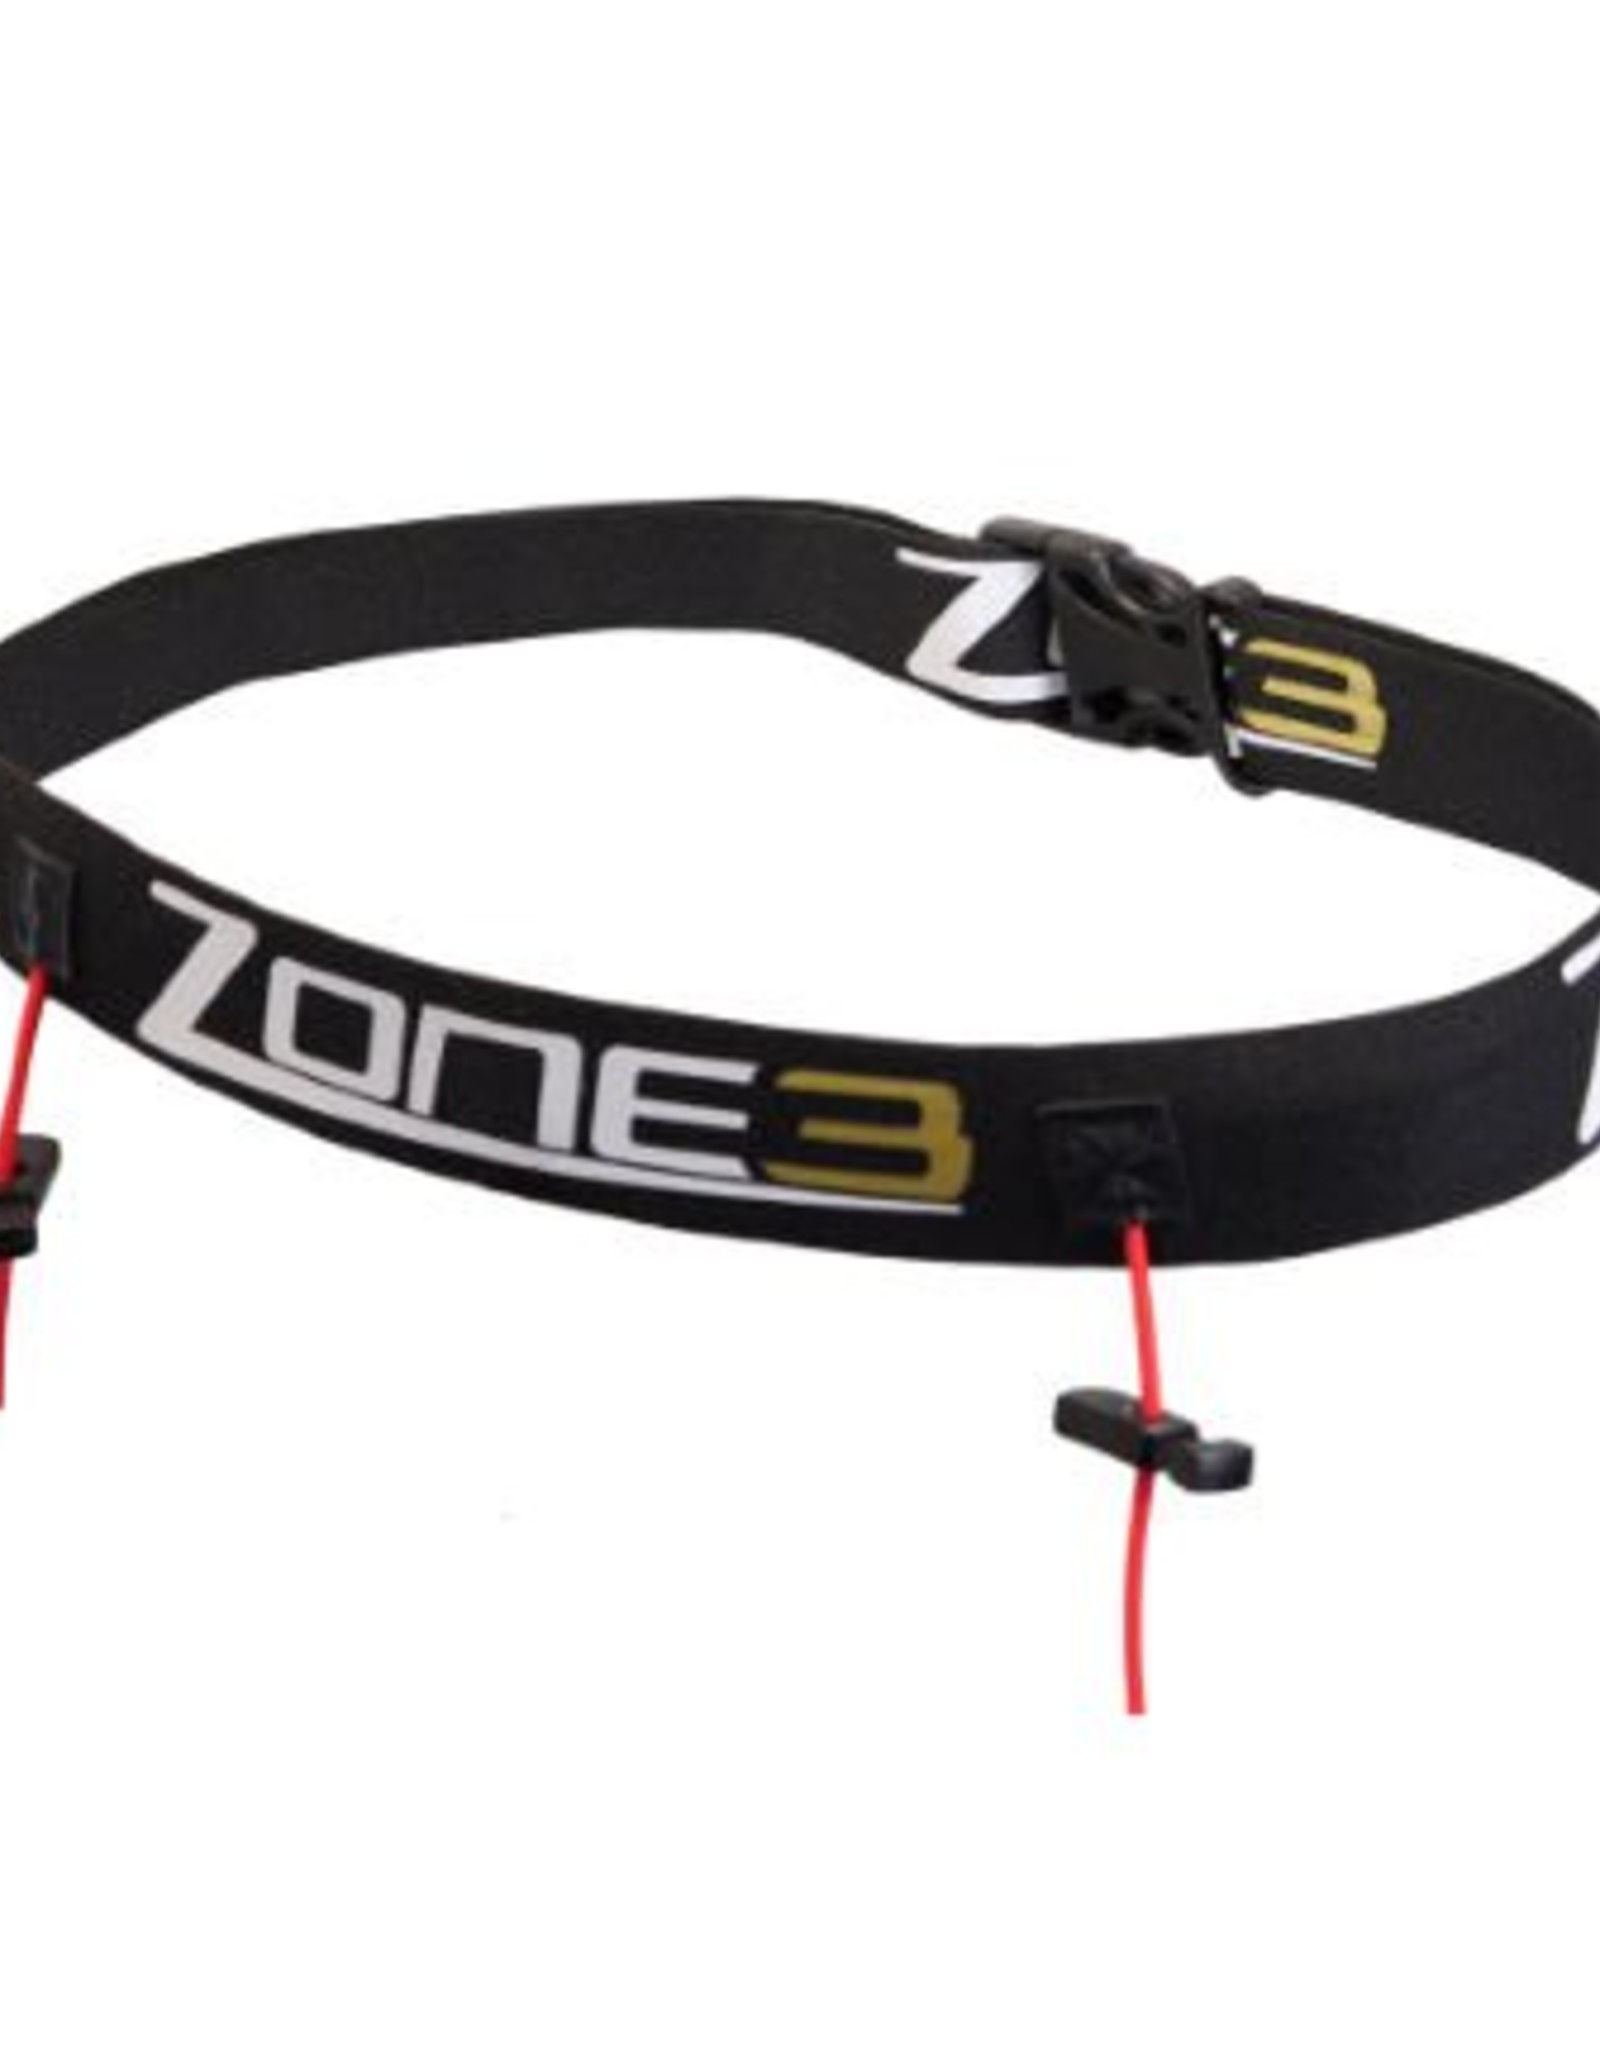 Zone 3 Race Number Belt